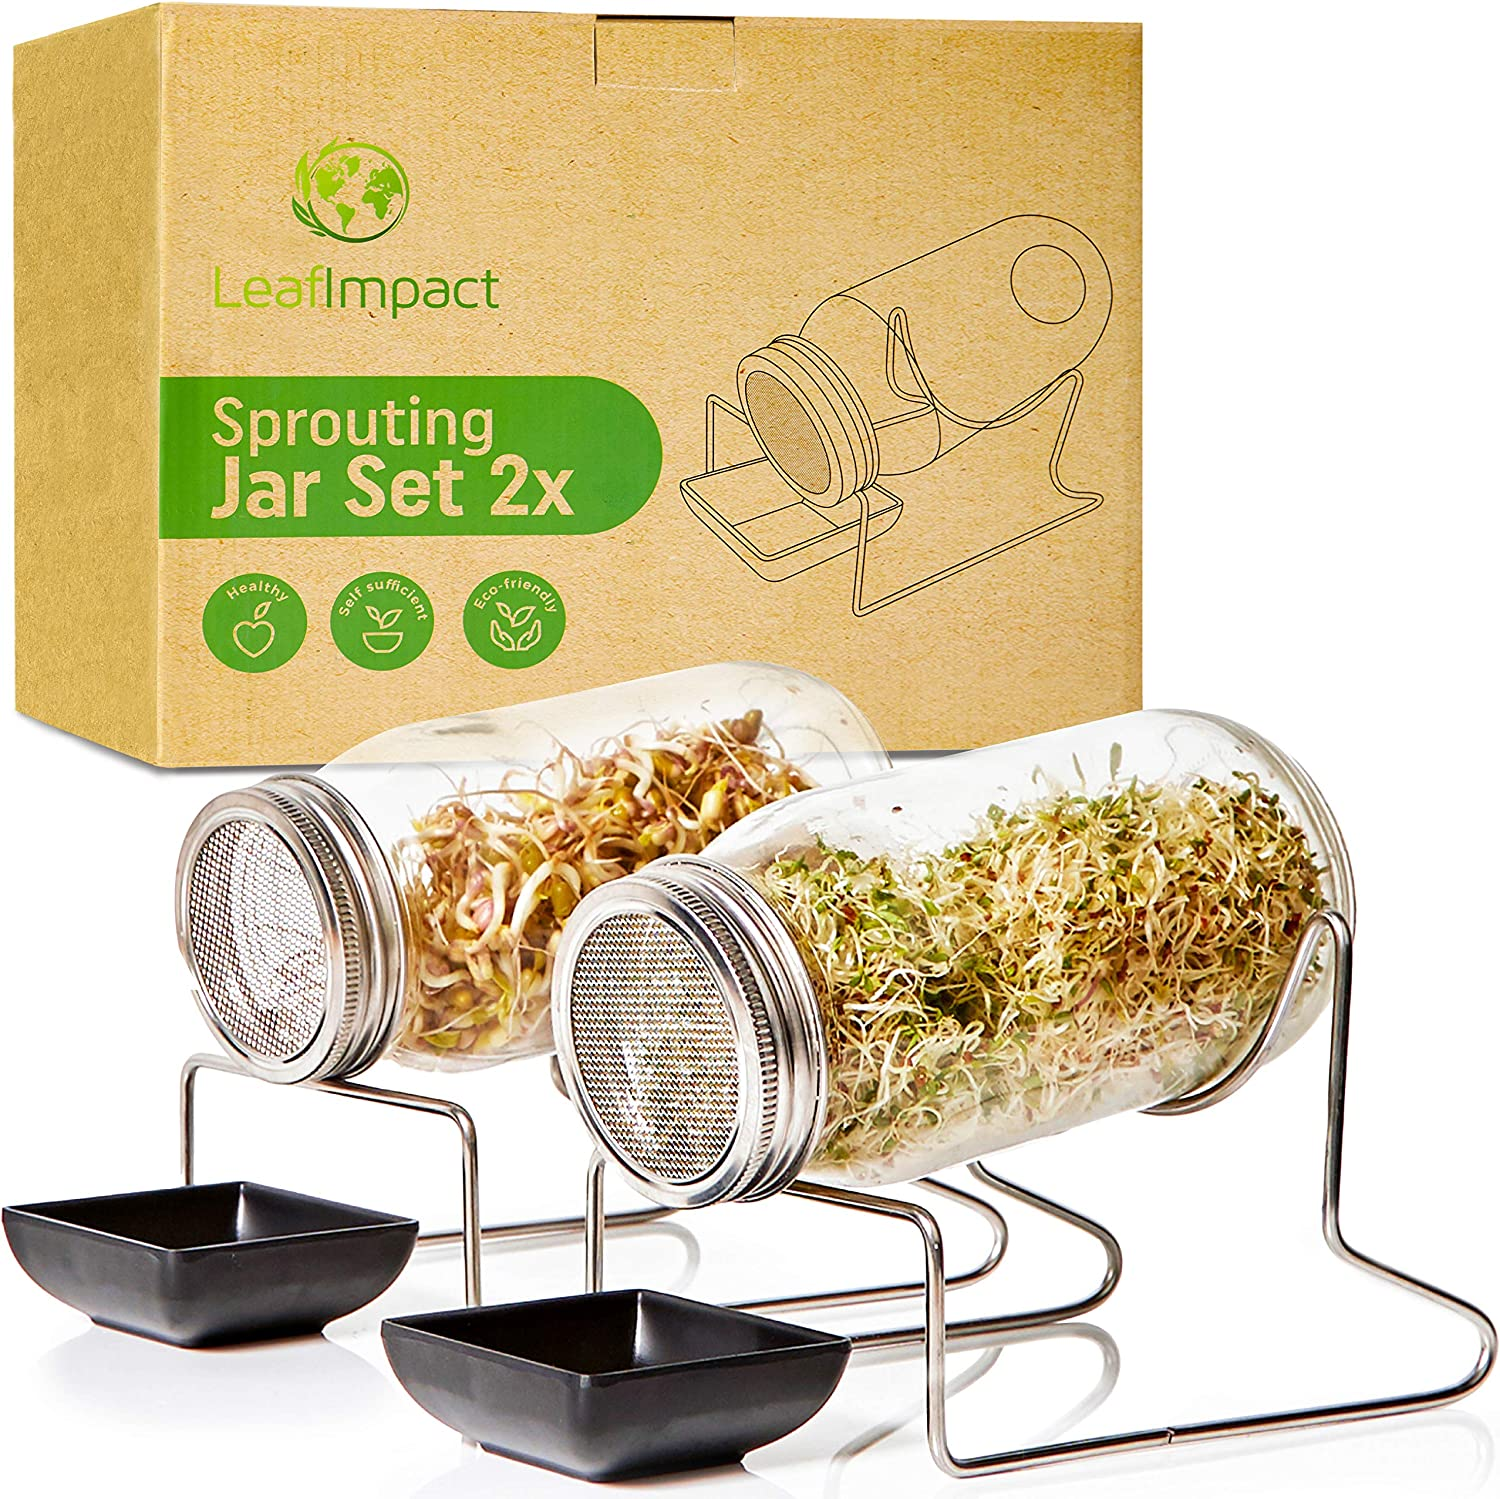 2 Pack Seed Sprouting Jar Kit | Complete Indoor Growing Set for Making Sprouts | Easy Organic Sprouts at Home | Sprout Starter Kit | Mason Jar for Sprouting Broccoli, Alfalfa, Mung Beans and More